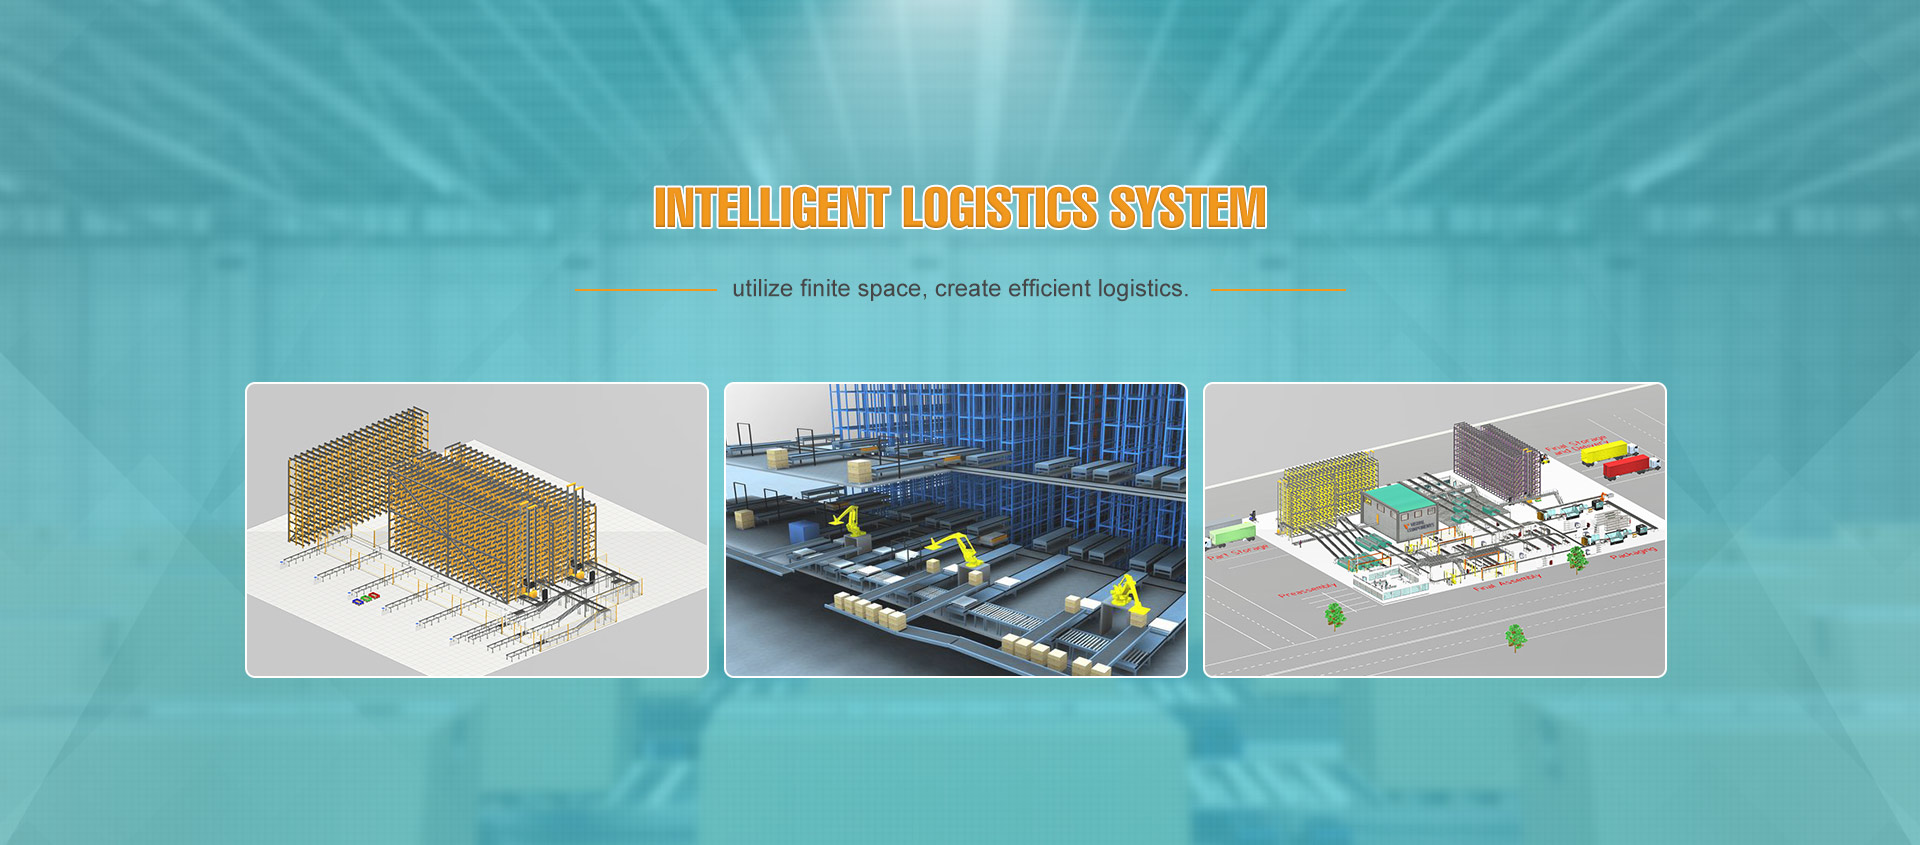 Intelligent Logistics System